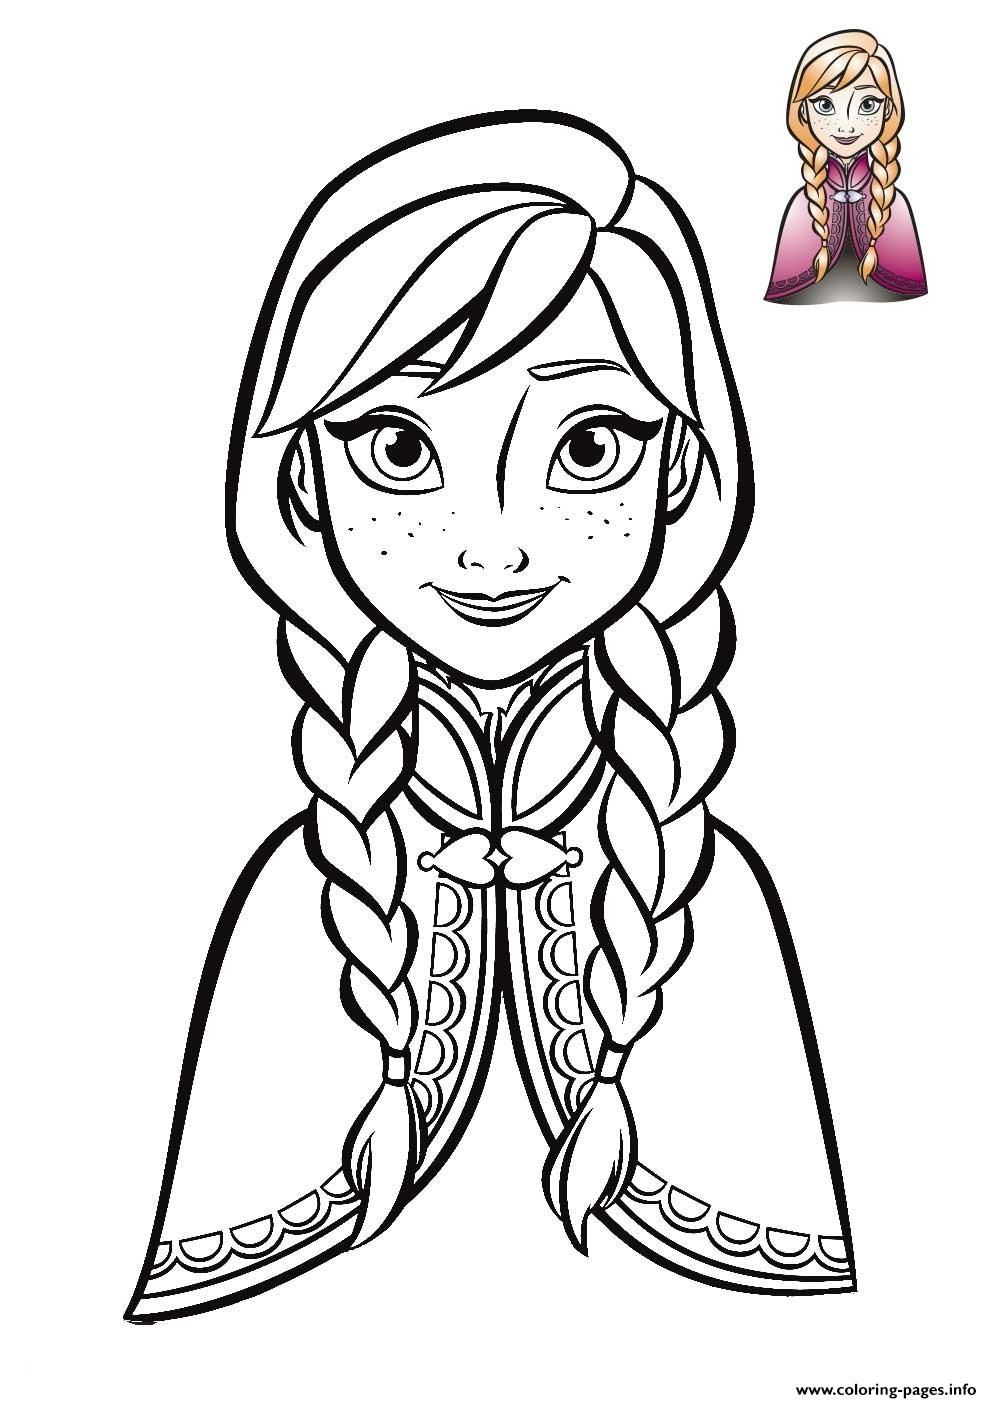 Anna Coloring Pages Anna Frozen Face 2018 Coloring Pages Printable In 2020 Disney Princess Coloring Pages Elsa Coloring Pages Disney Coloring Pages